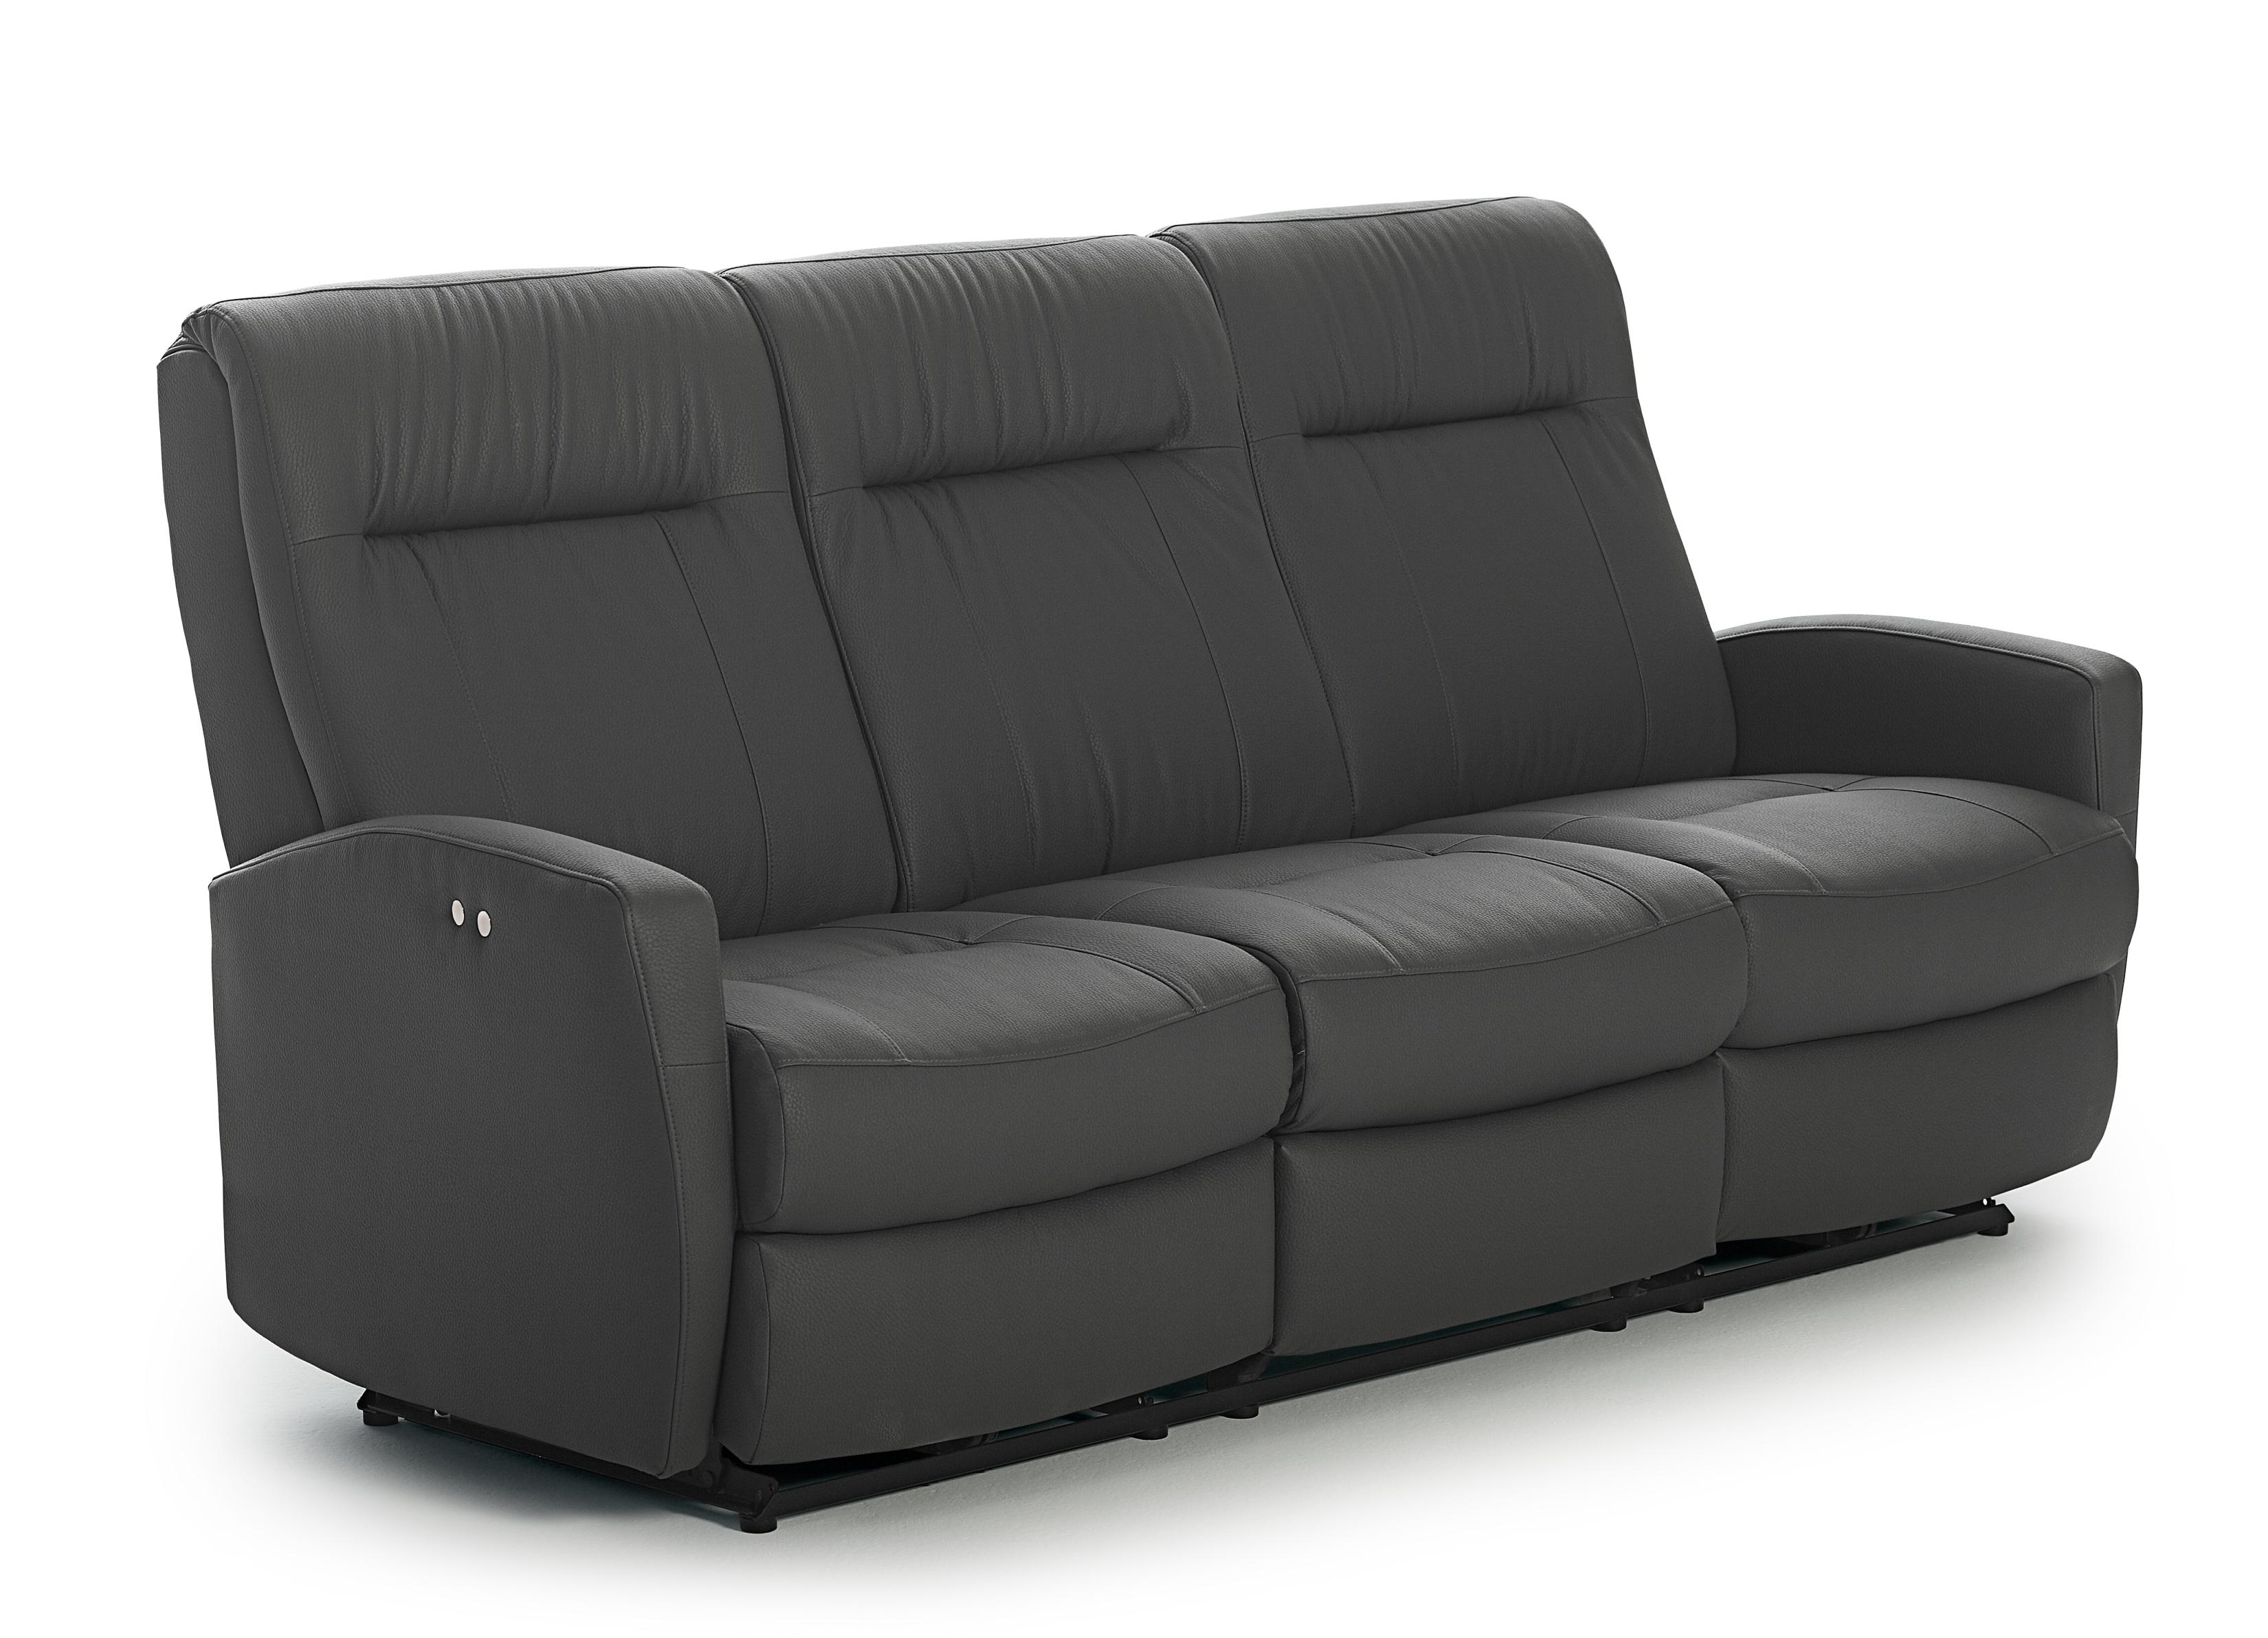 Contemporary Space Saver Reclining Sofa By Best Home Furnishings Wolf And Gardiner Wolf Furniture